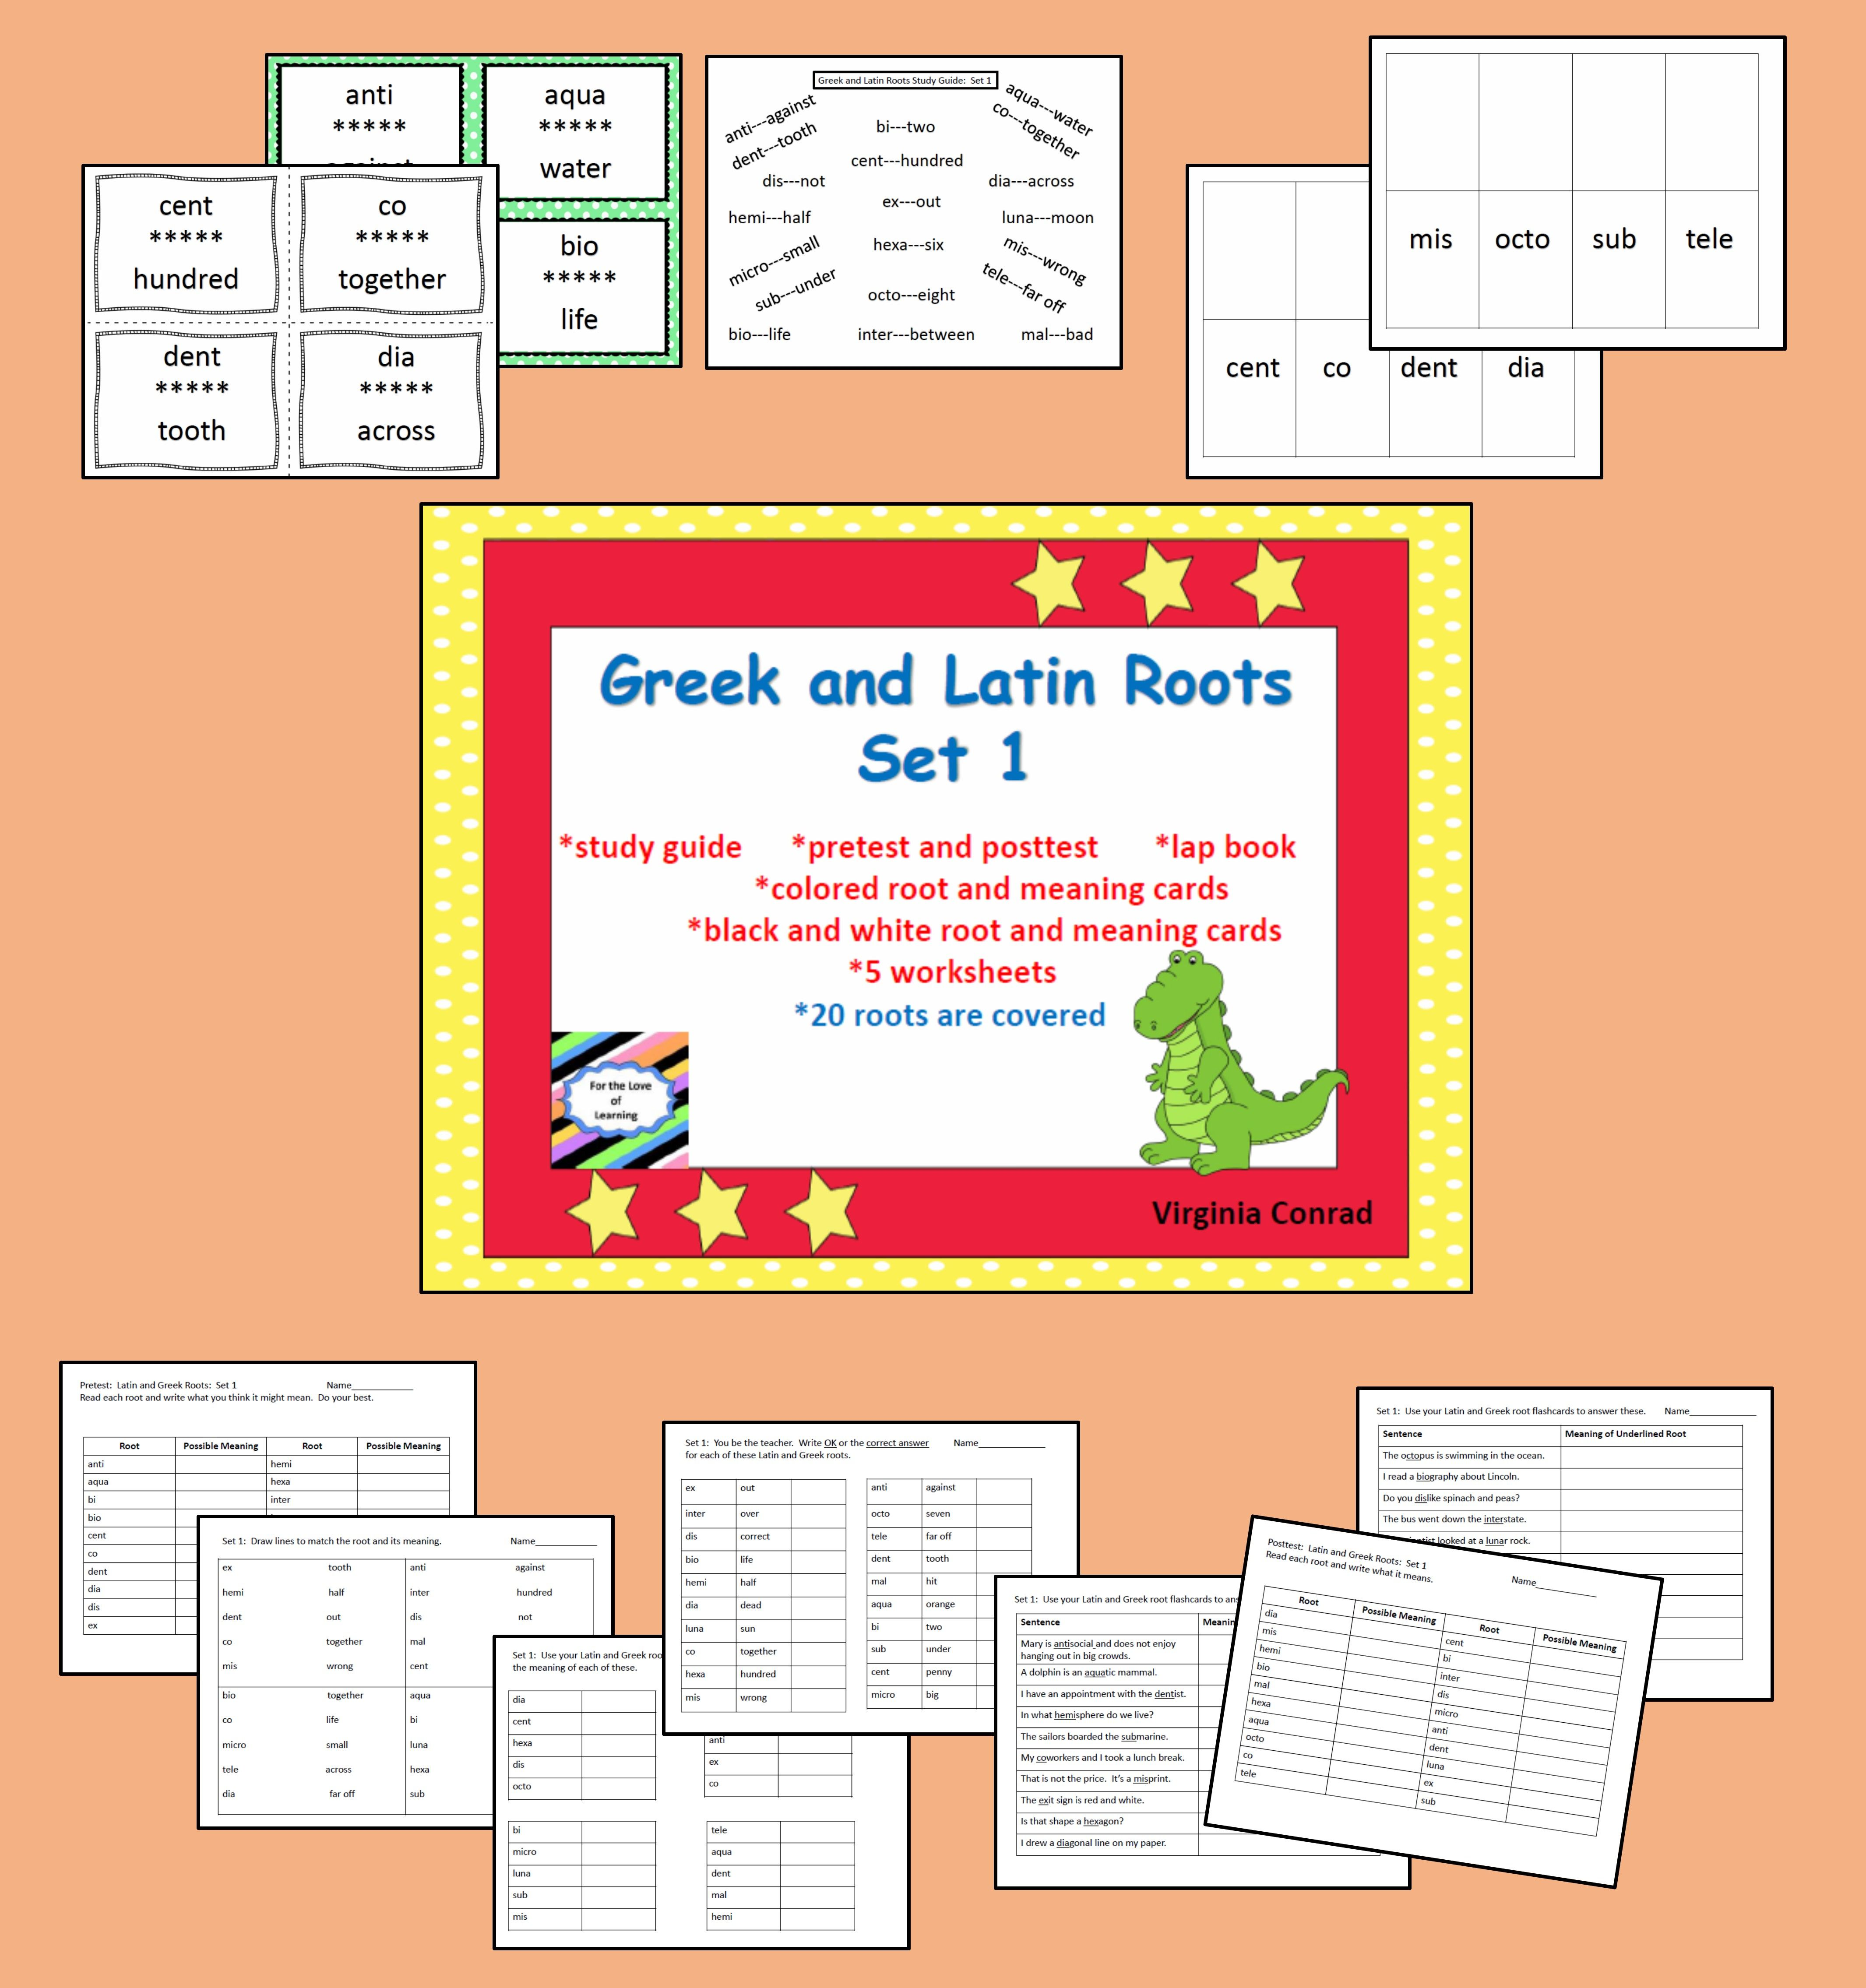 Need To Teach Or Review Latin And Greek Roots This Packet Can Help There Are 20 Roots Covered With Word Meaning Cards Latin Roots Phonics Words Word Study